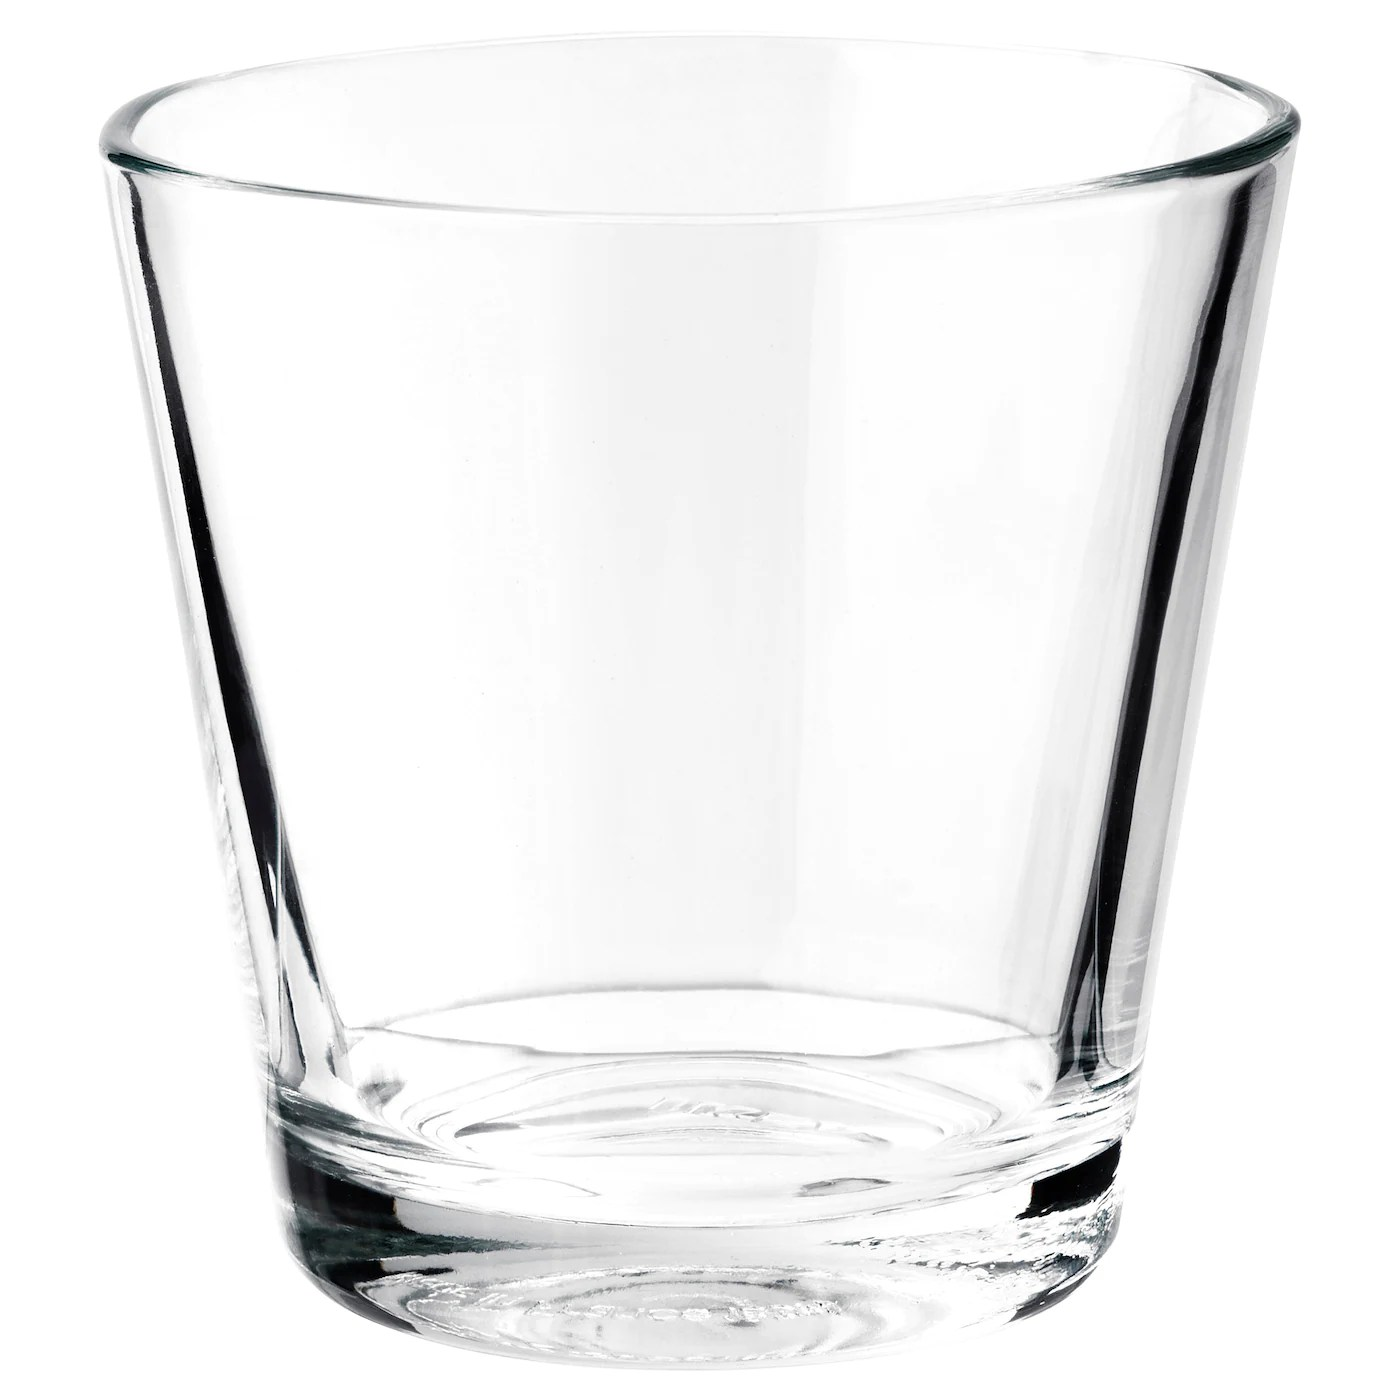 Glas Tassen Glasses & Drinking Glasses | Ikea